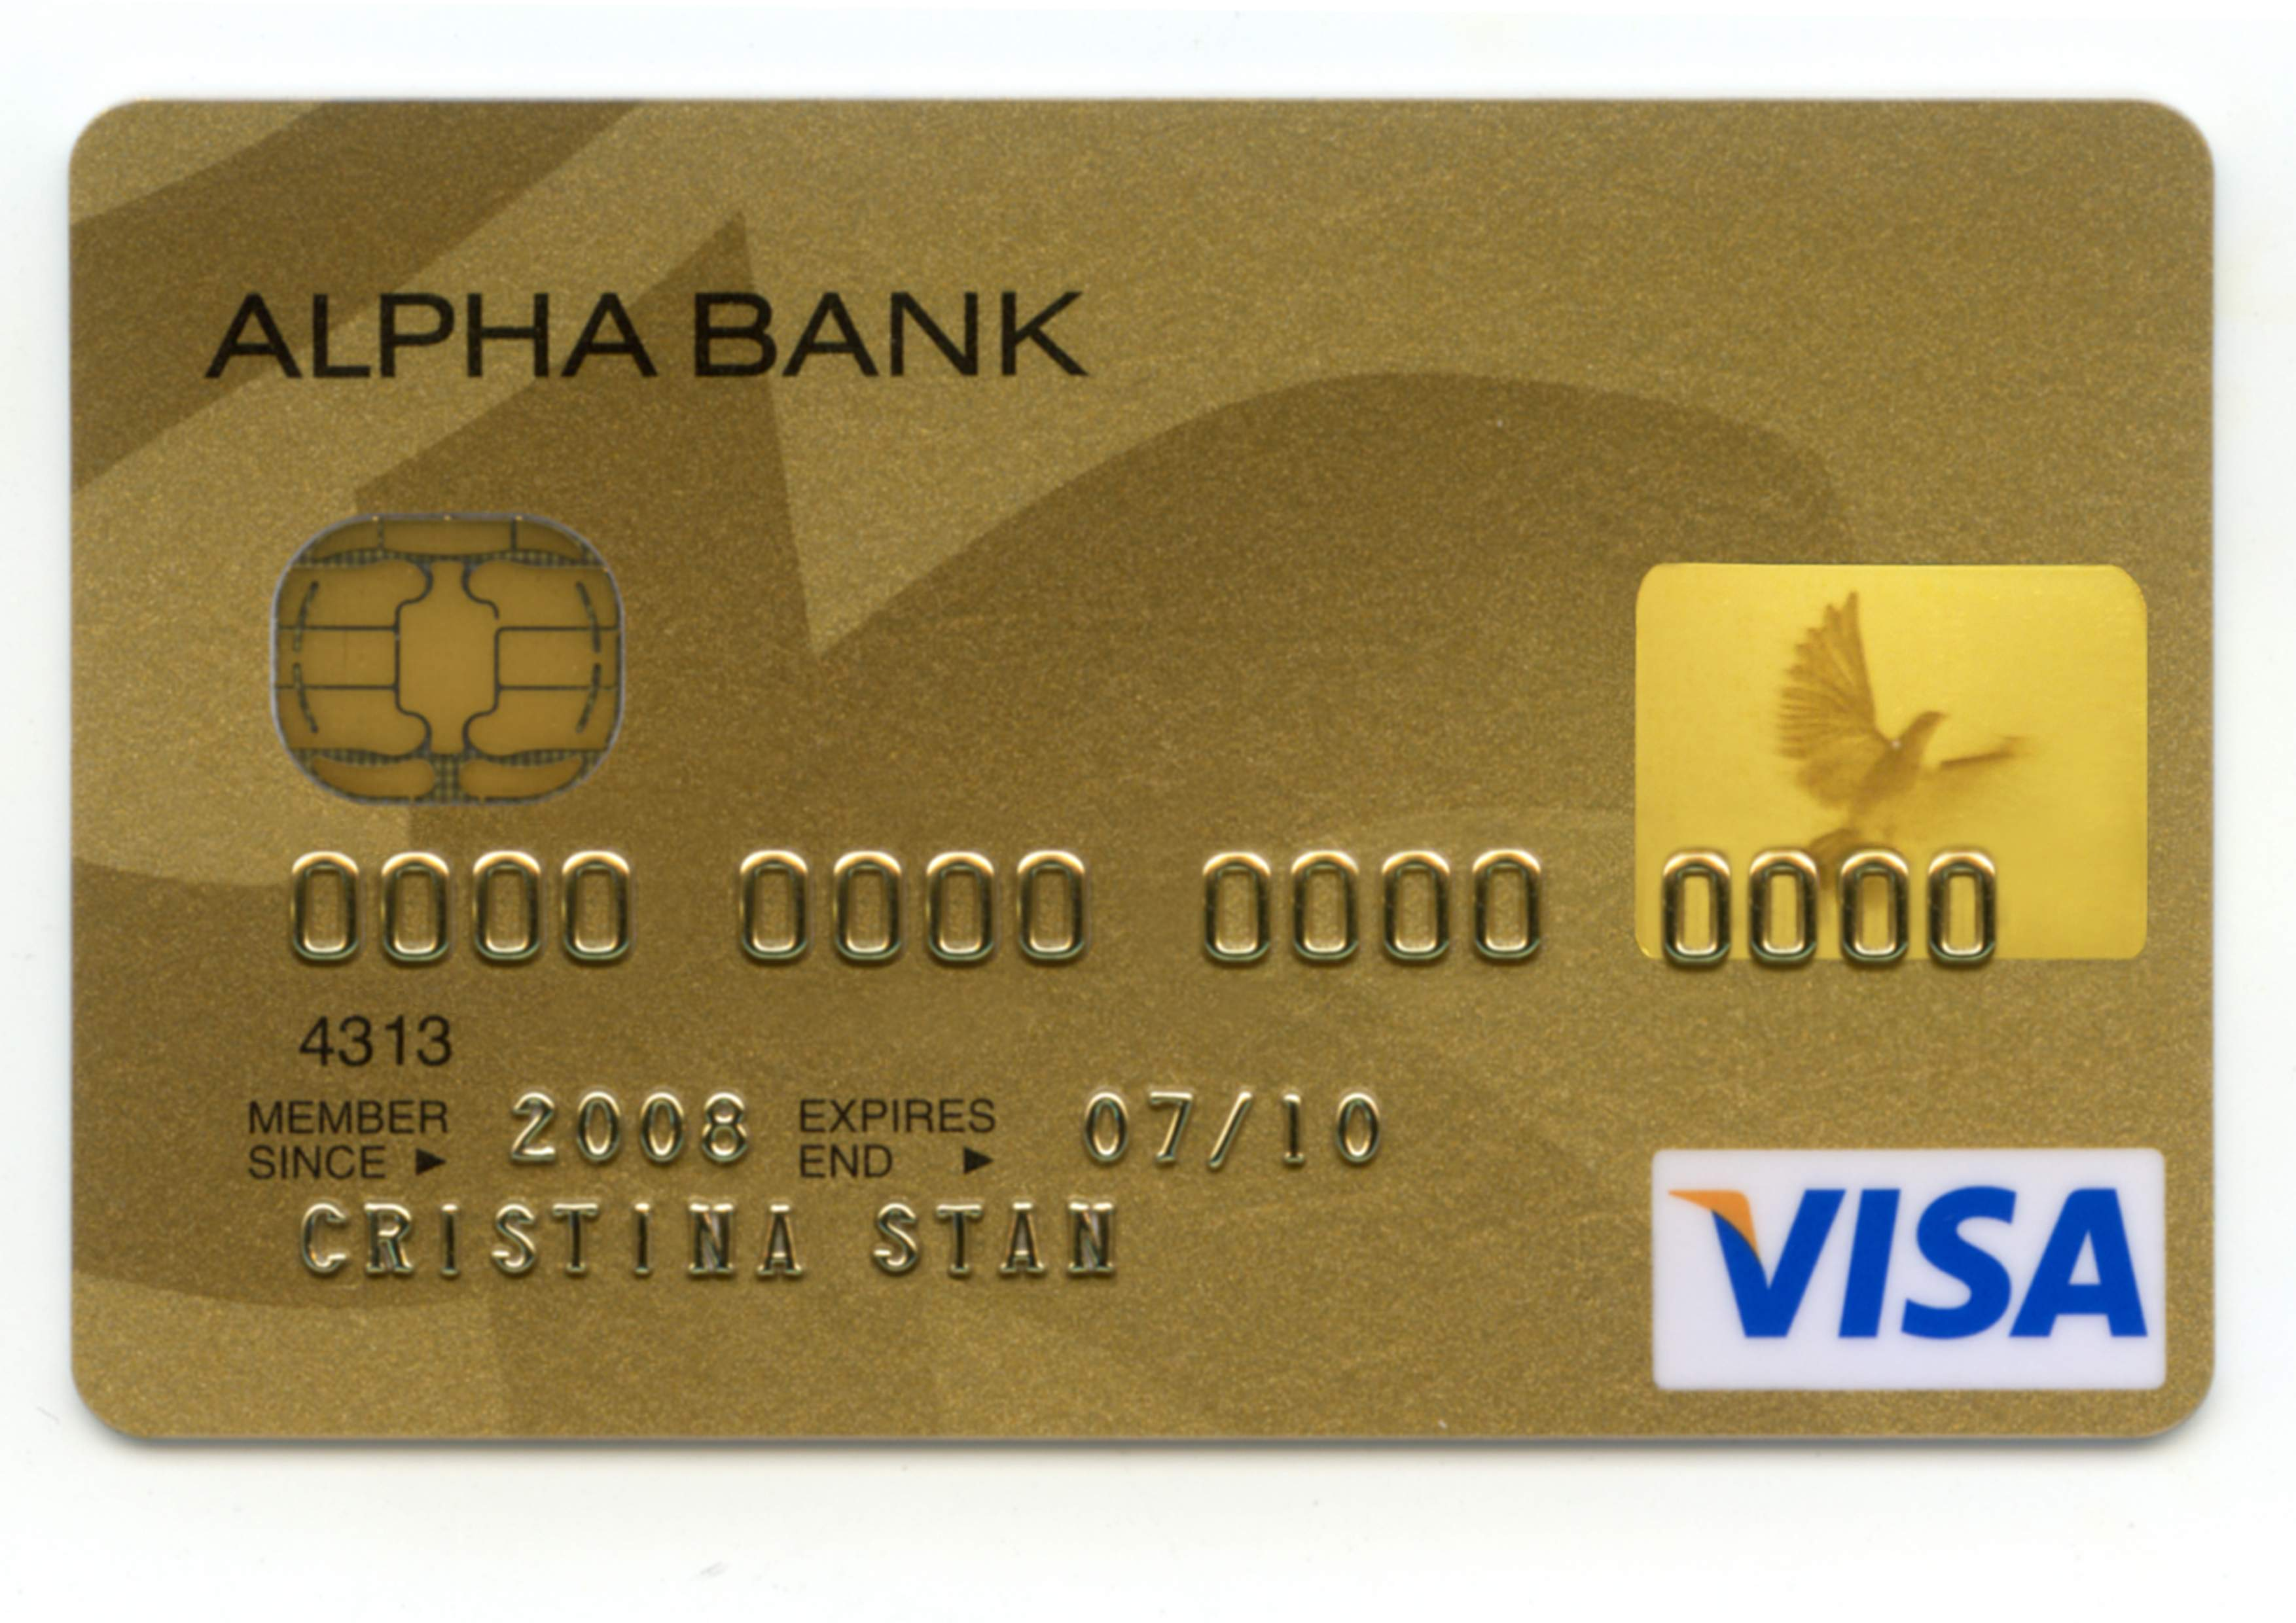 Alpha-bank-Card.jpg (443 KB)